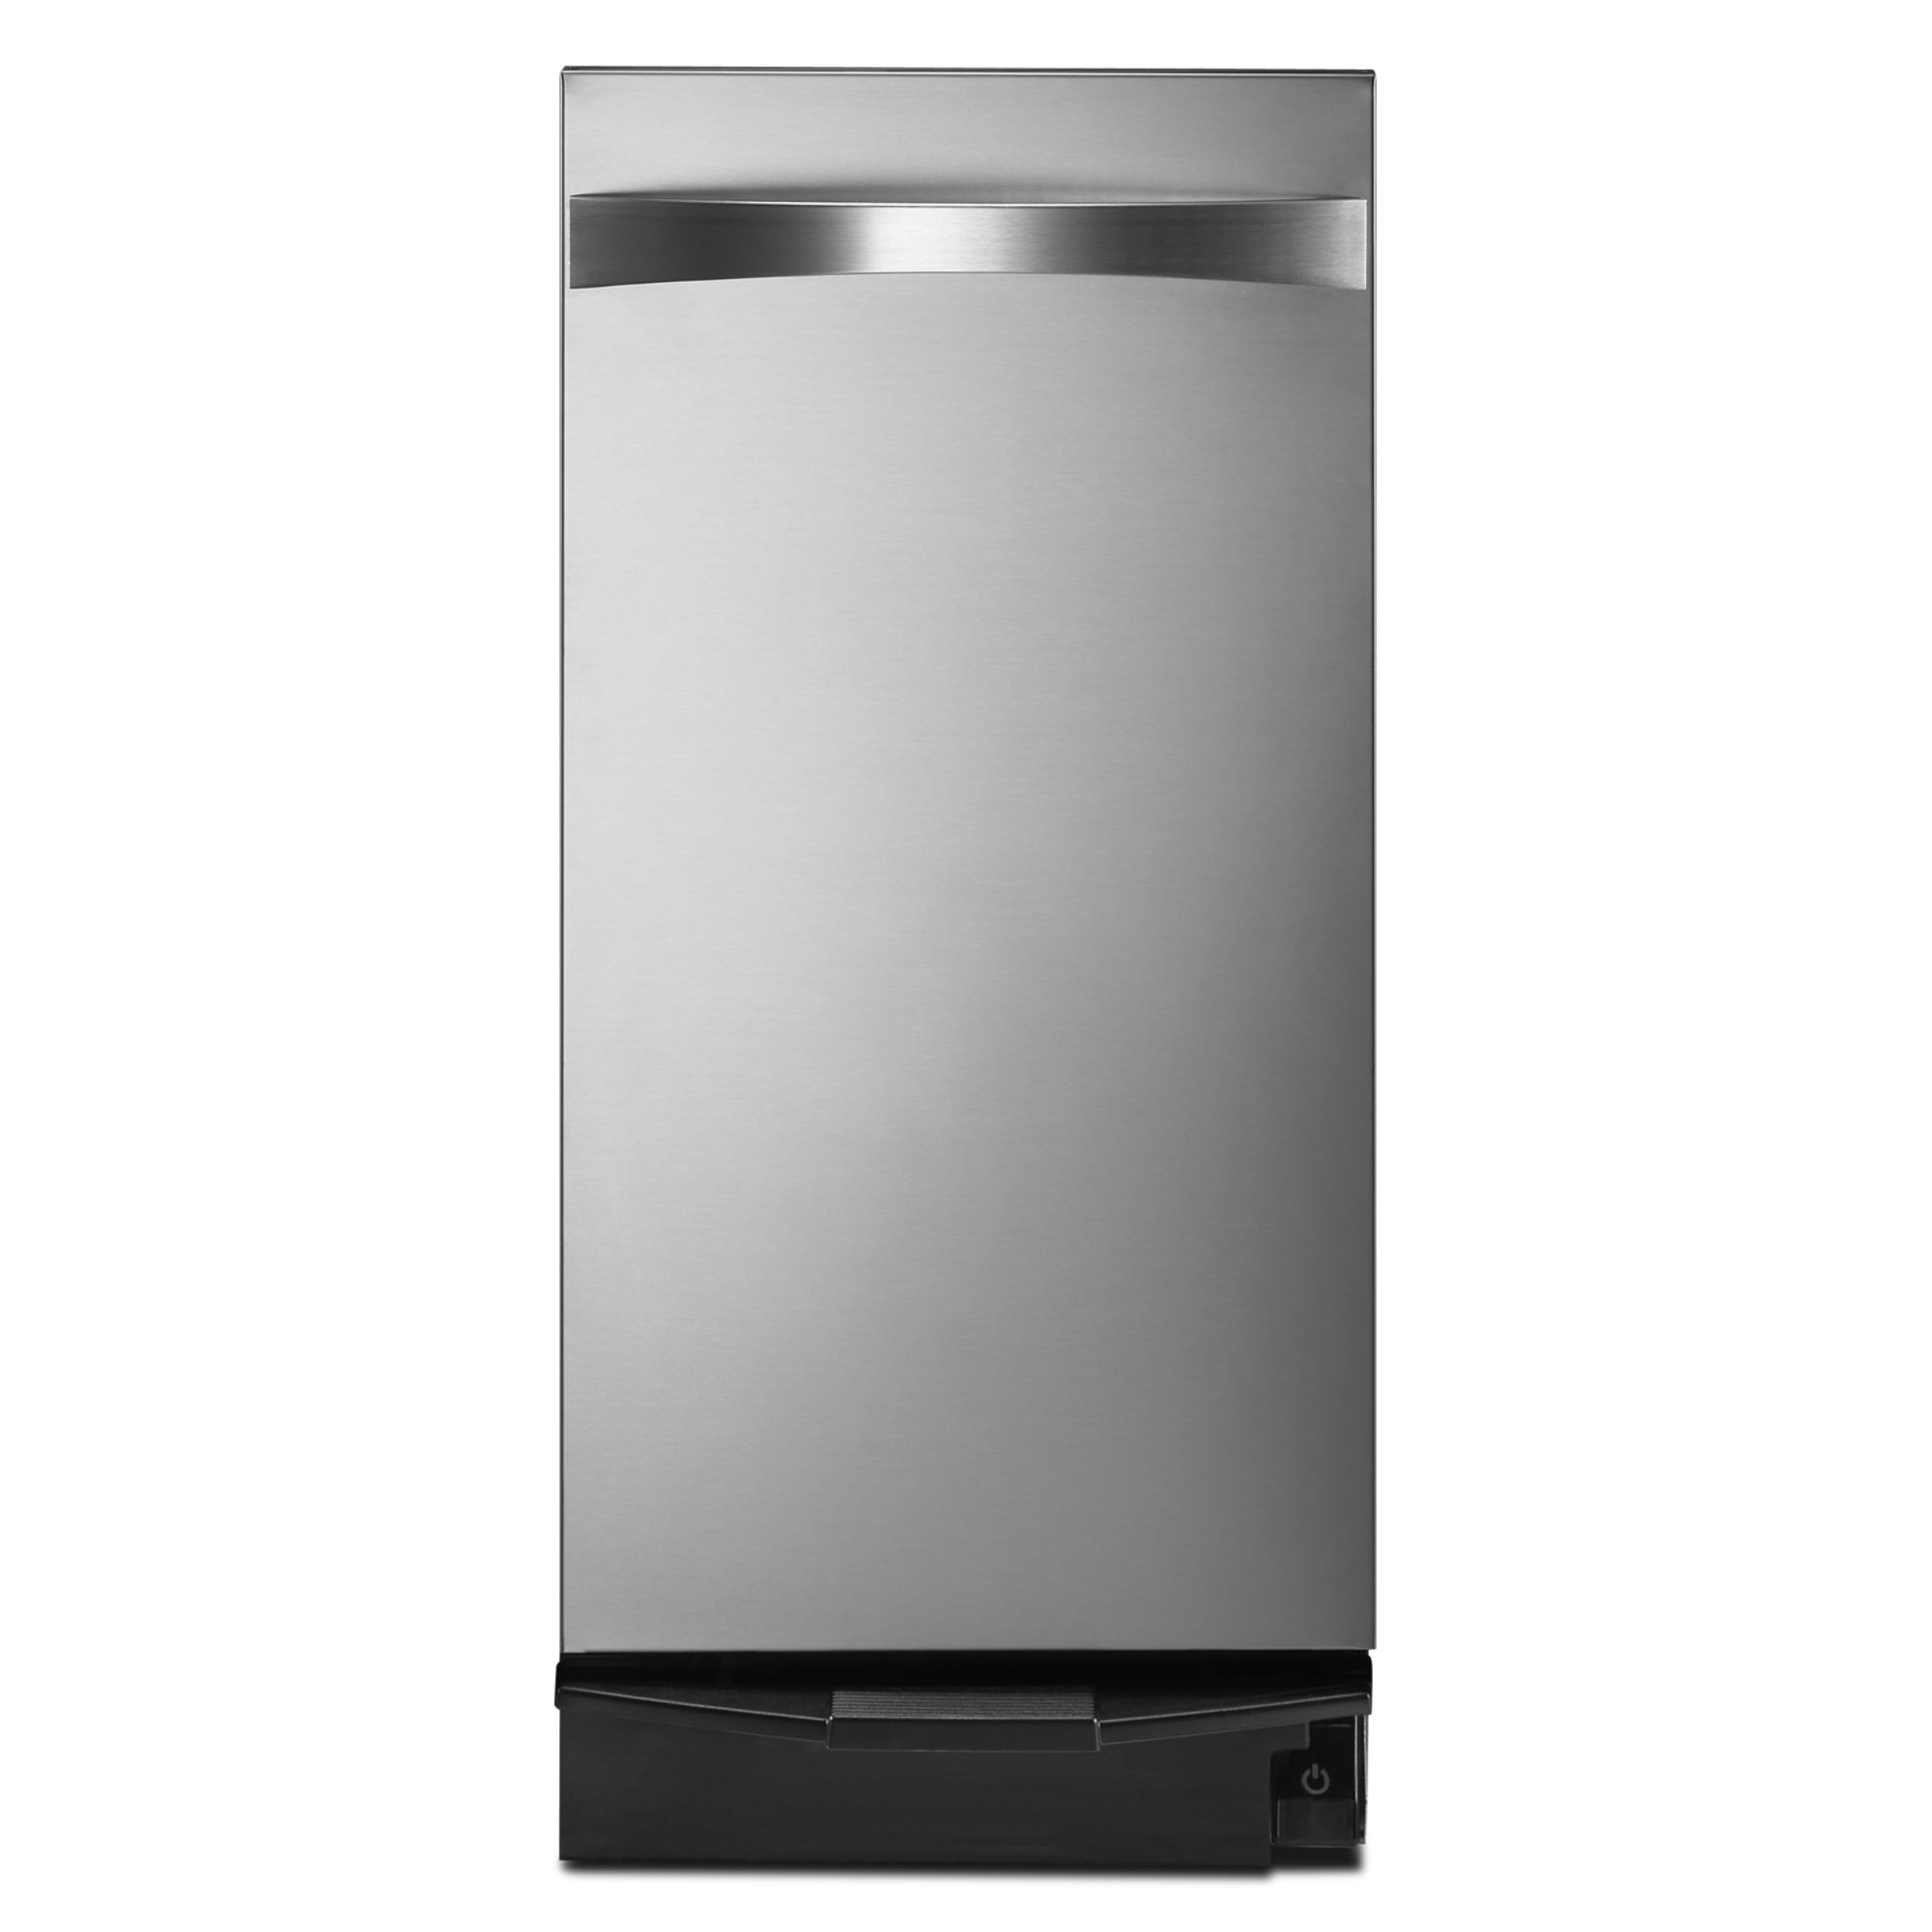 Kenmore Elite Stainless Steel Trash Compactor